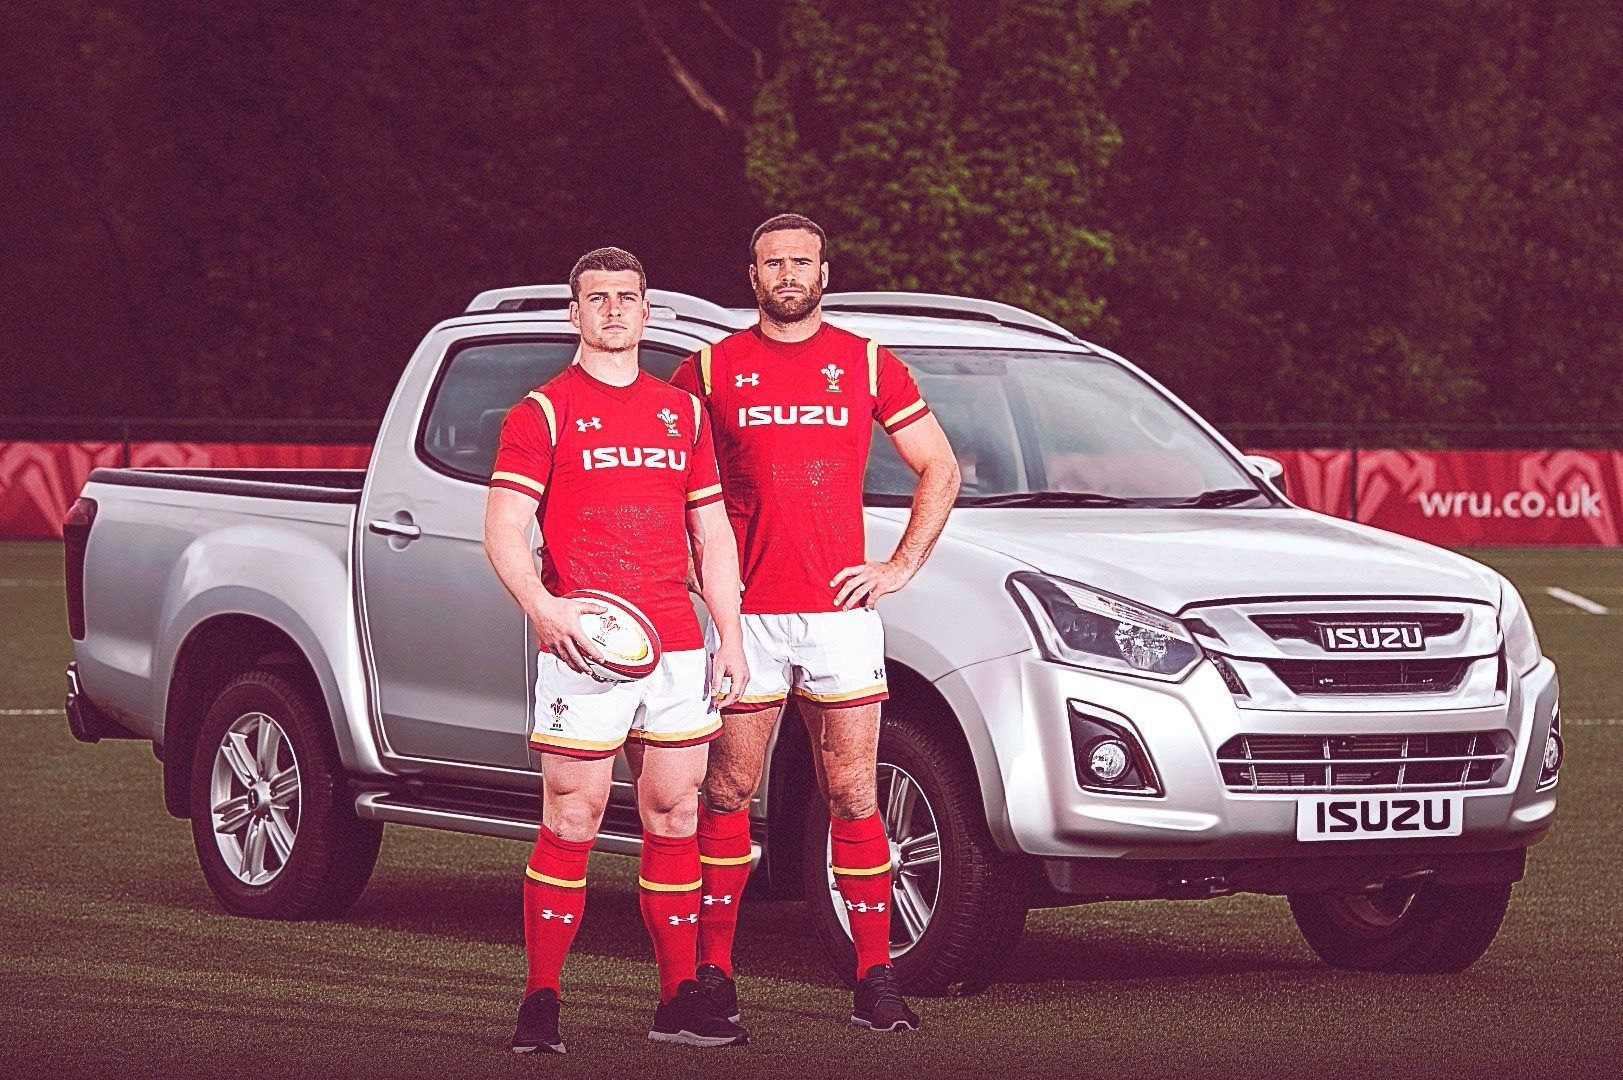 WALES PICK-UP HISTORIC ISUZU DEAL